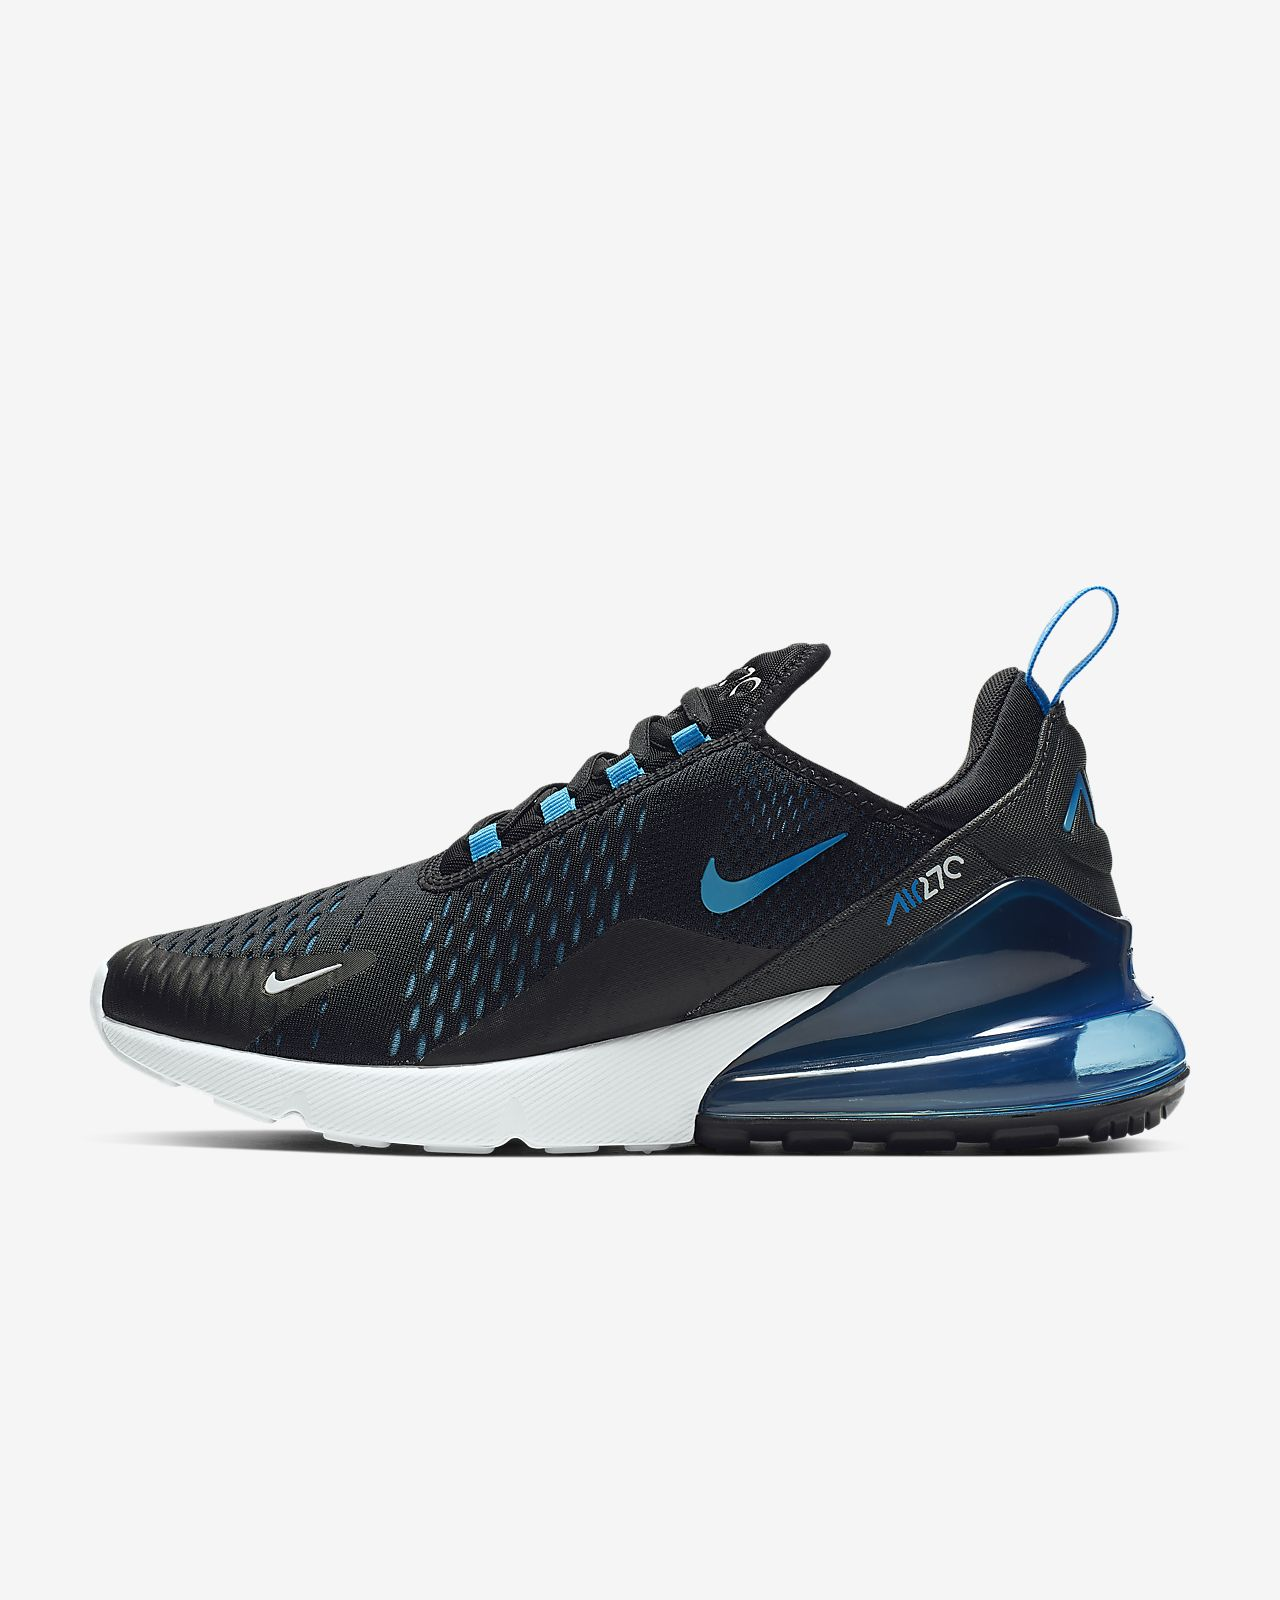 meet df880 4f266 Men s Shoe. Nike Air Max 270